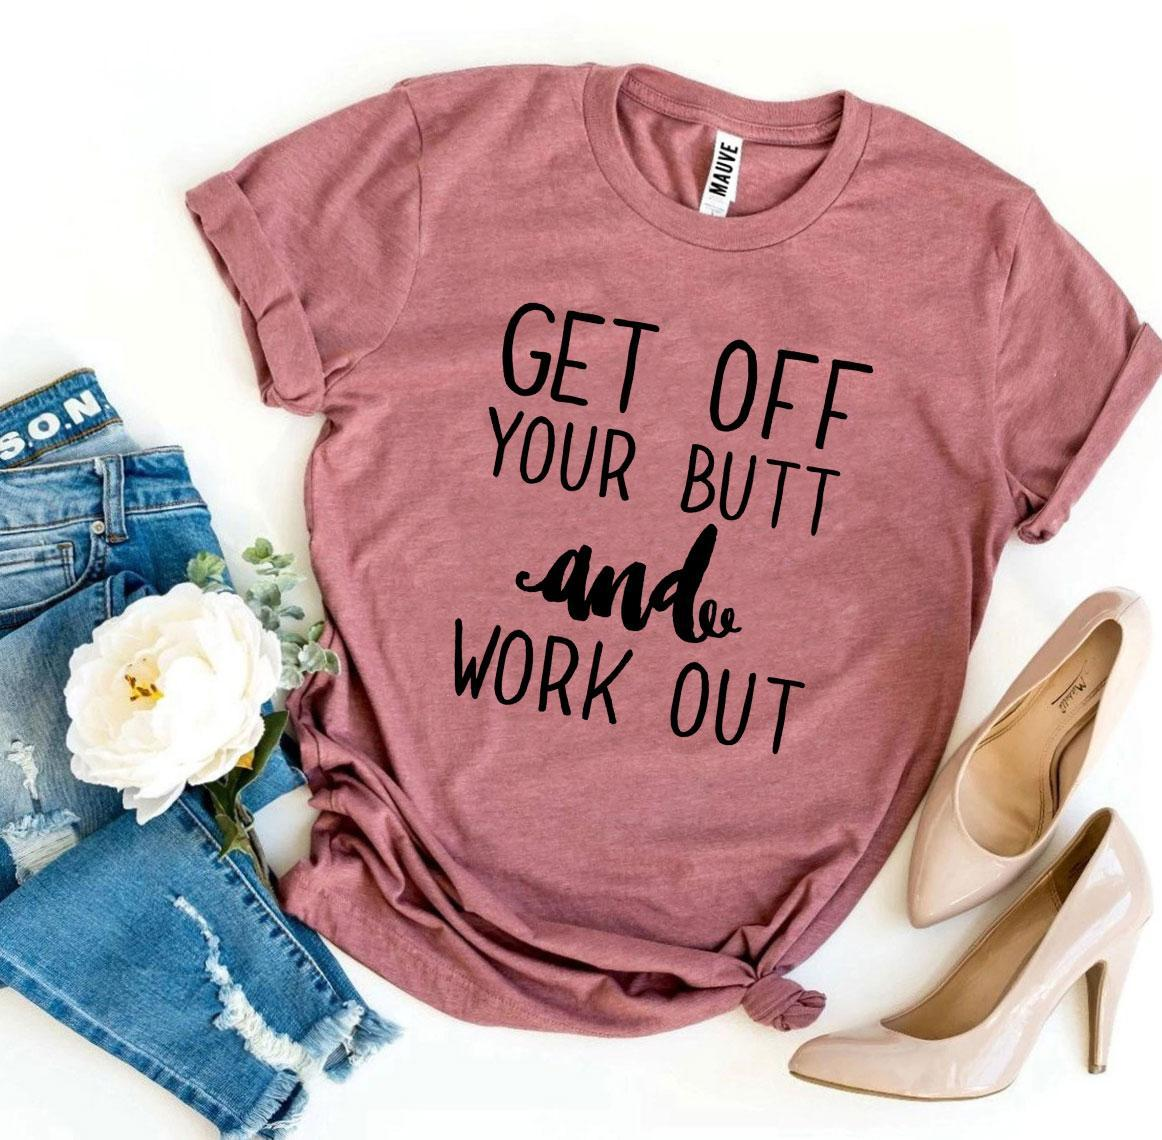 Get Off Your Butt And Work Out T-shirt | gymgiantgear